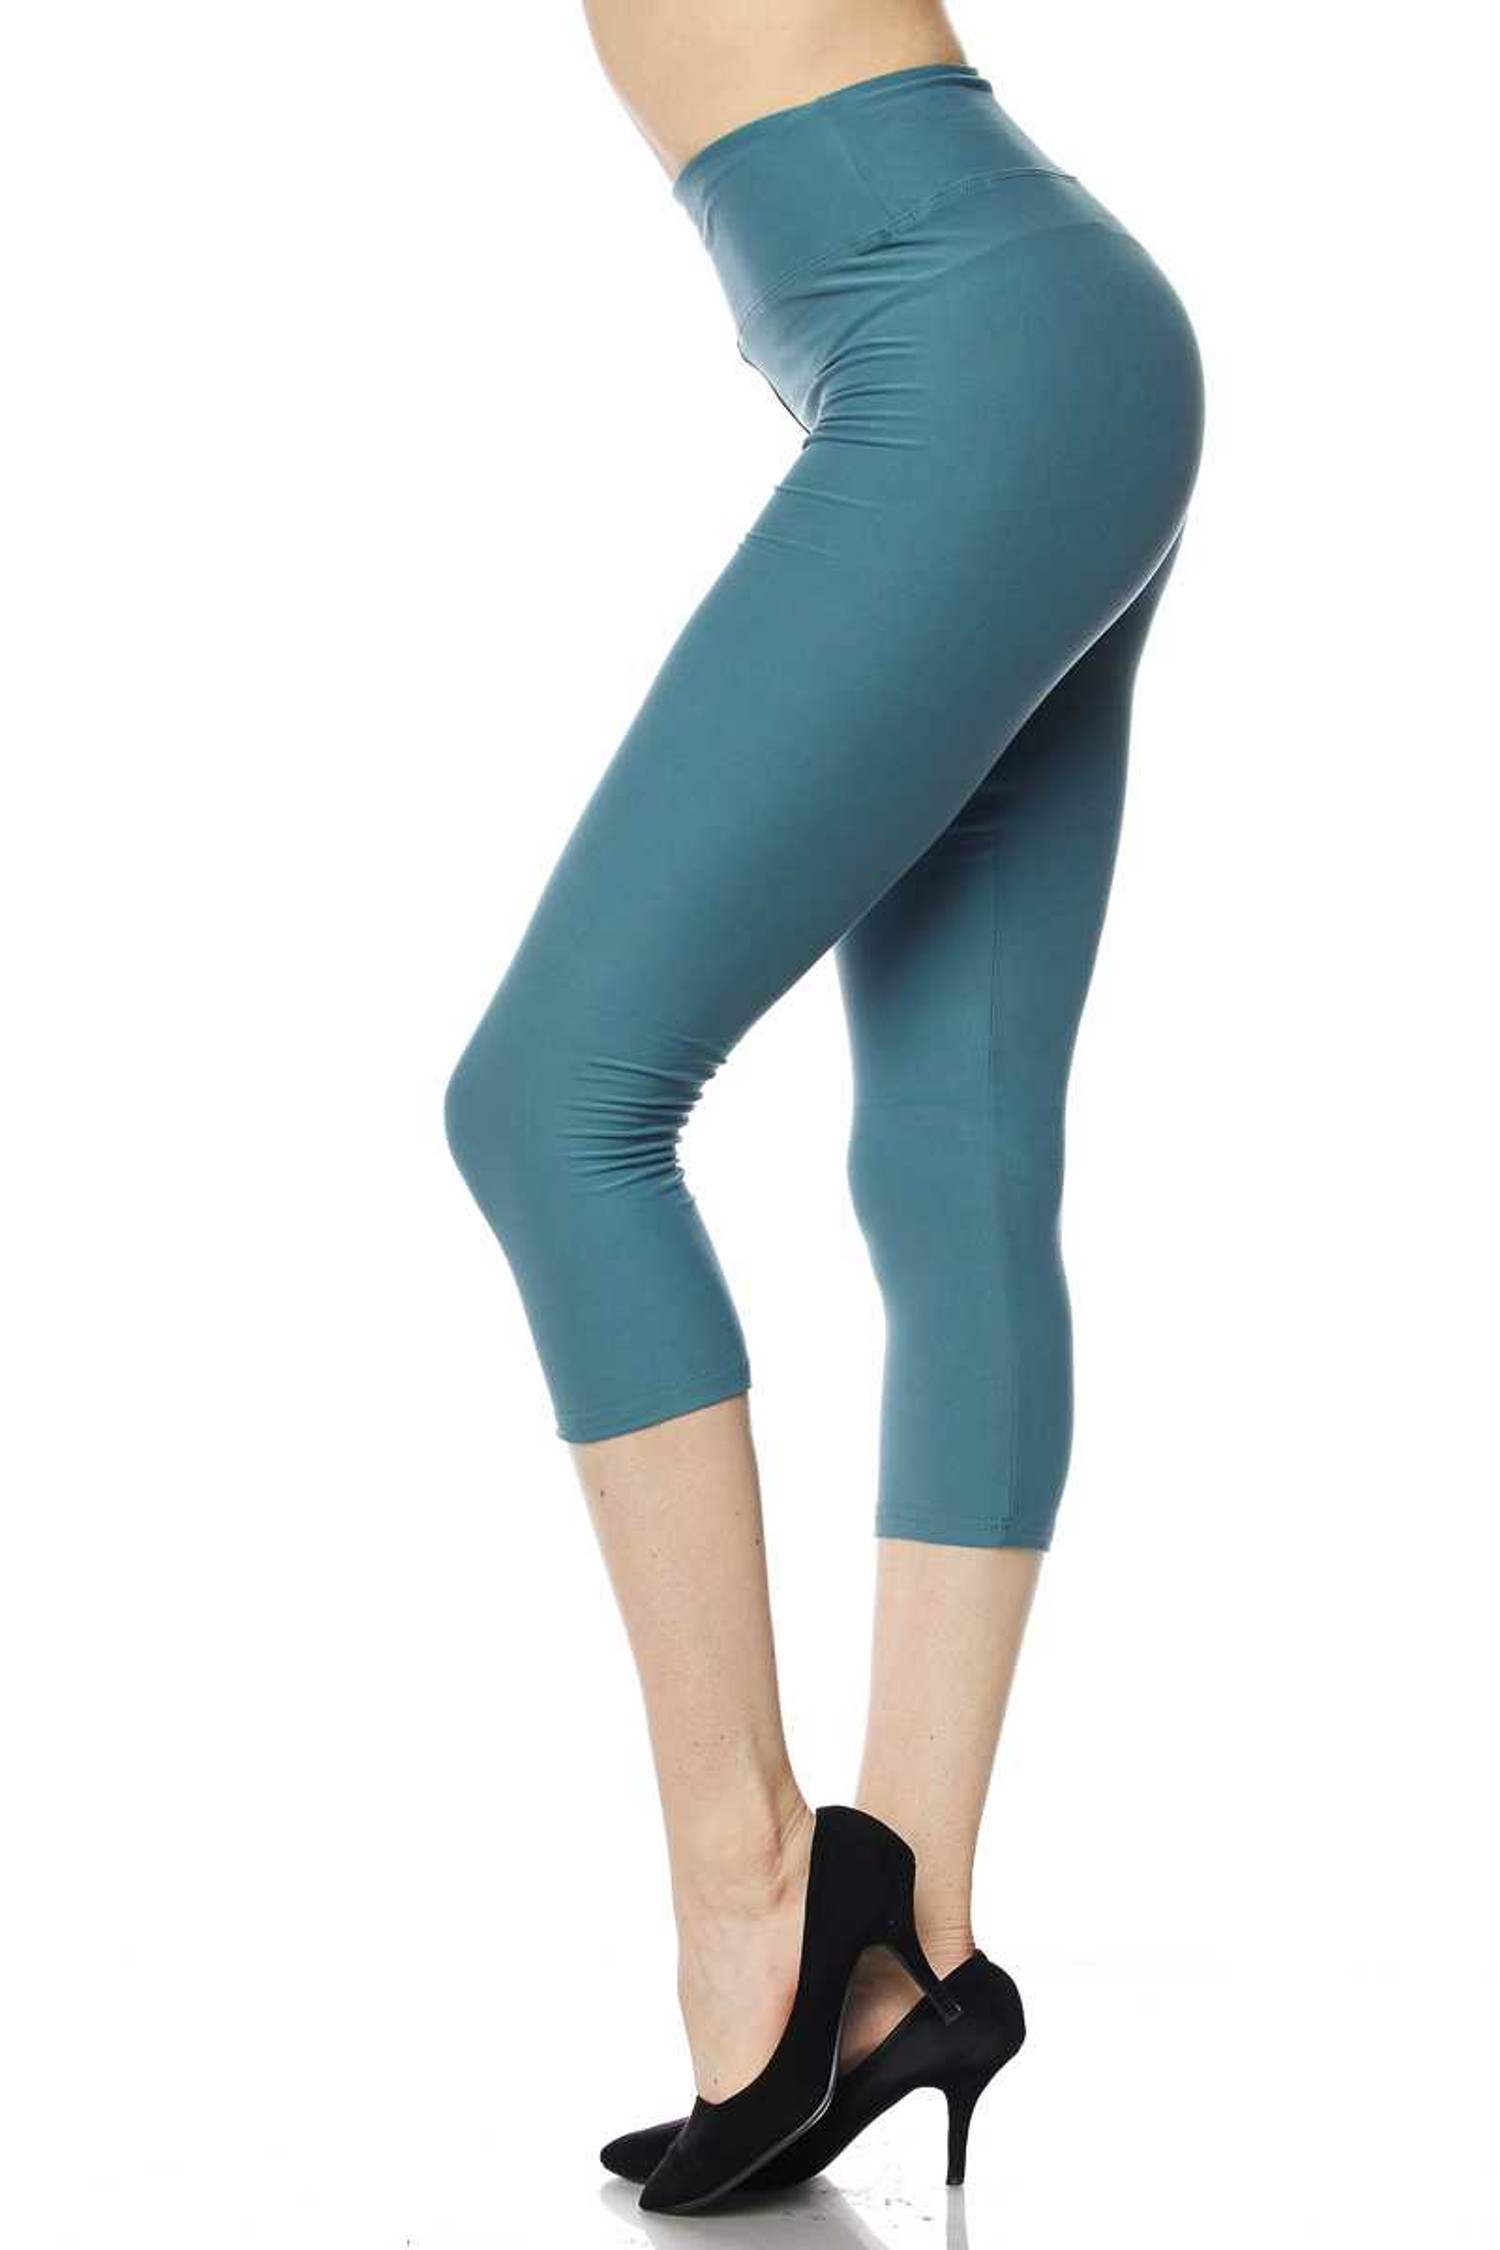 Brushed  High Waisted Plus Size Basic Solid Capris - 3 Inch Band